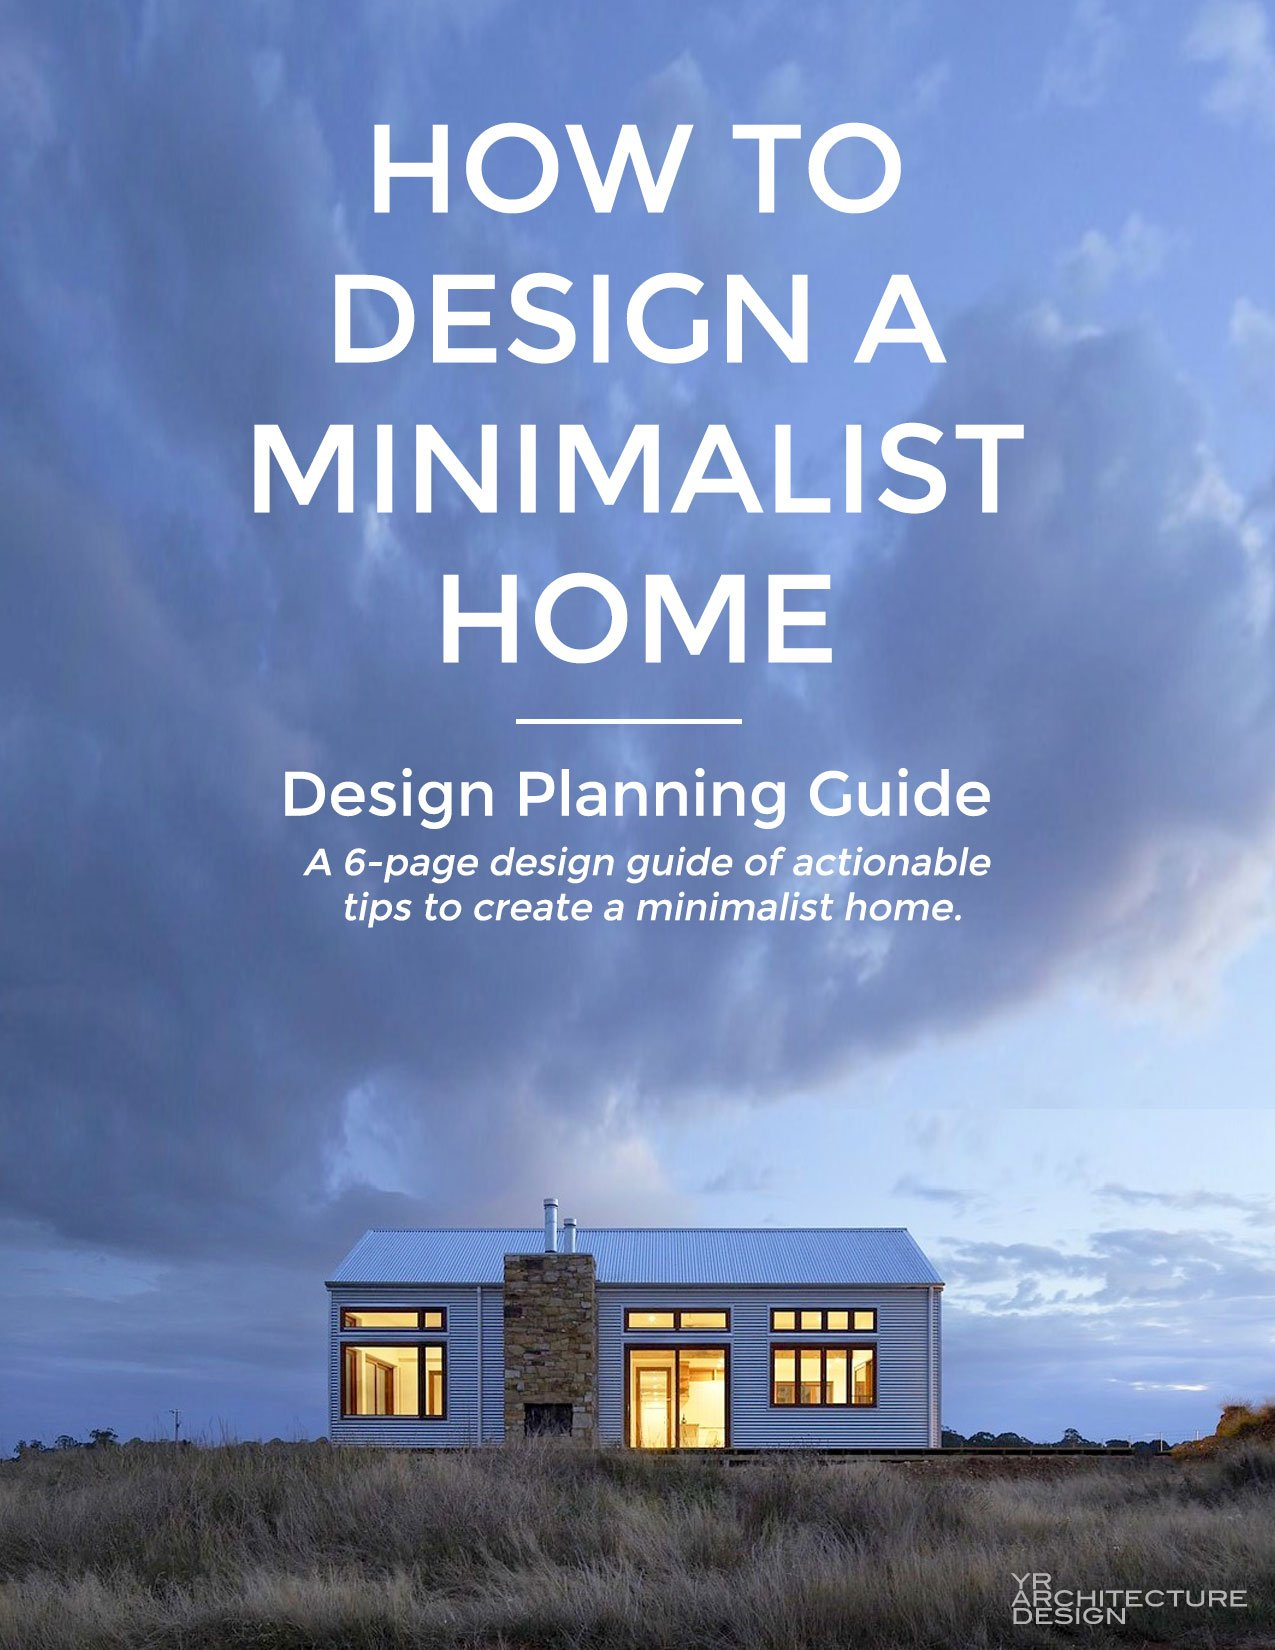 minimalist home designs. 59b5f27f486b1487093675 How To Design A Minimalist Home image  5 Characteristics of Modern House Designs